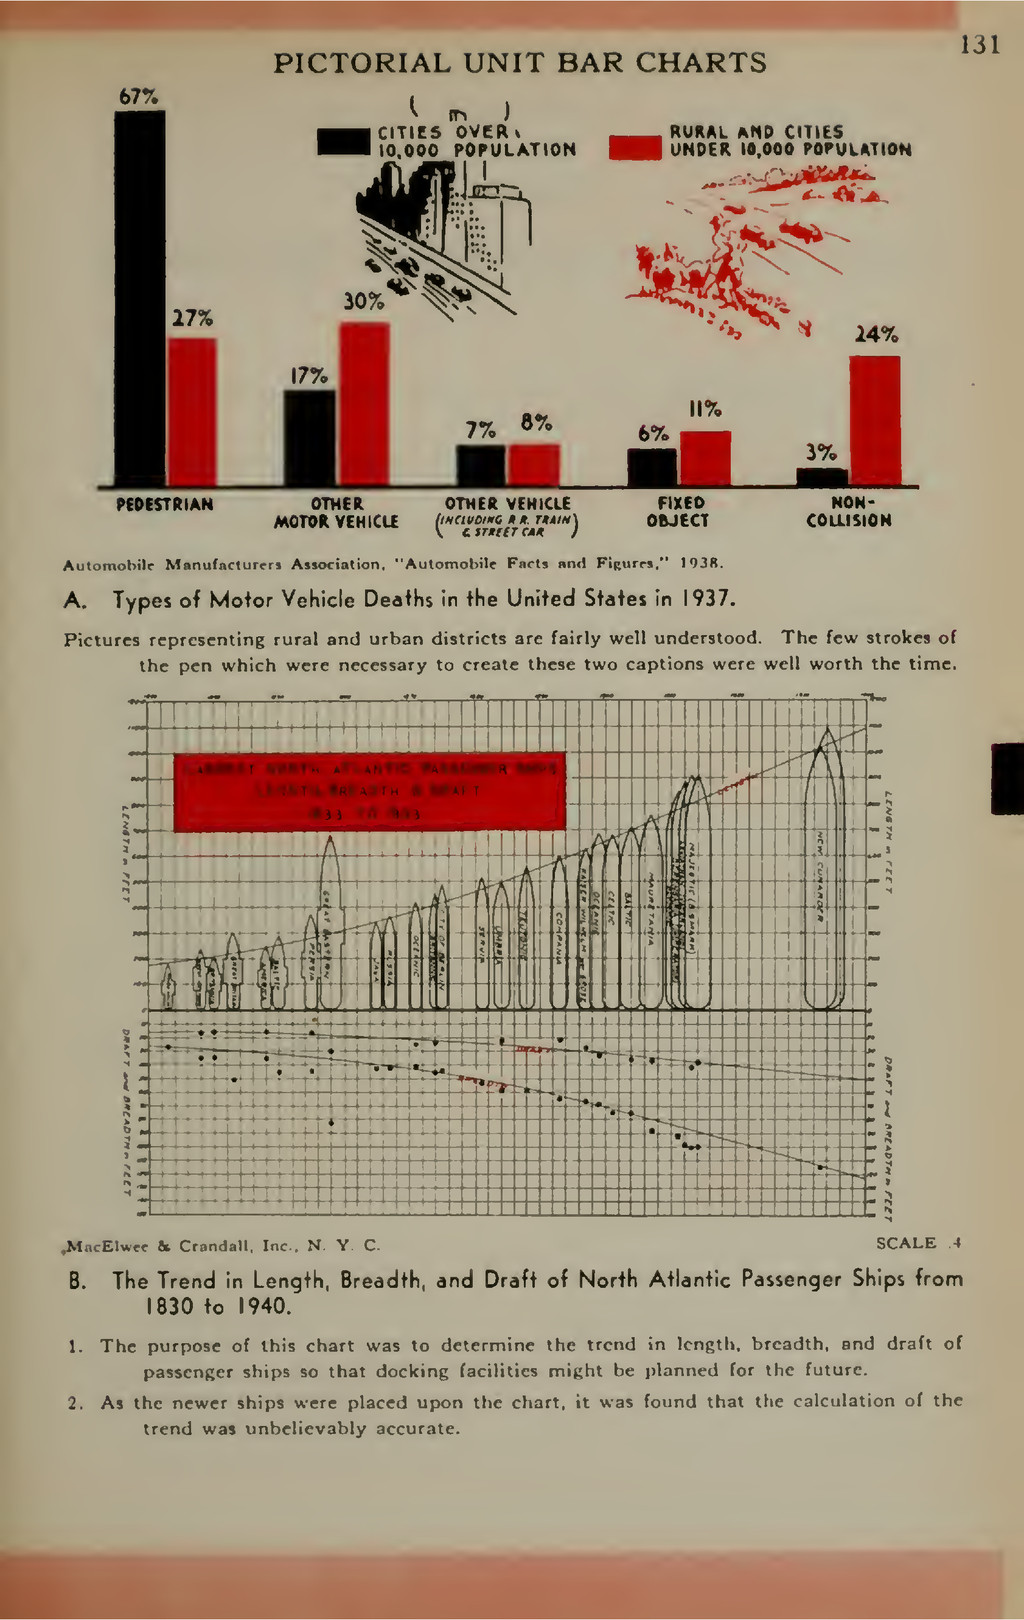 PICTORIAL UNIT BAR CHARTS UI 67% ^ r. ) CITIES ...